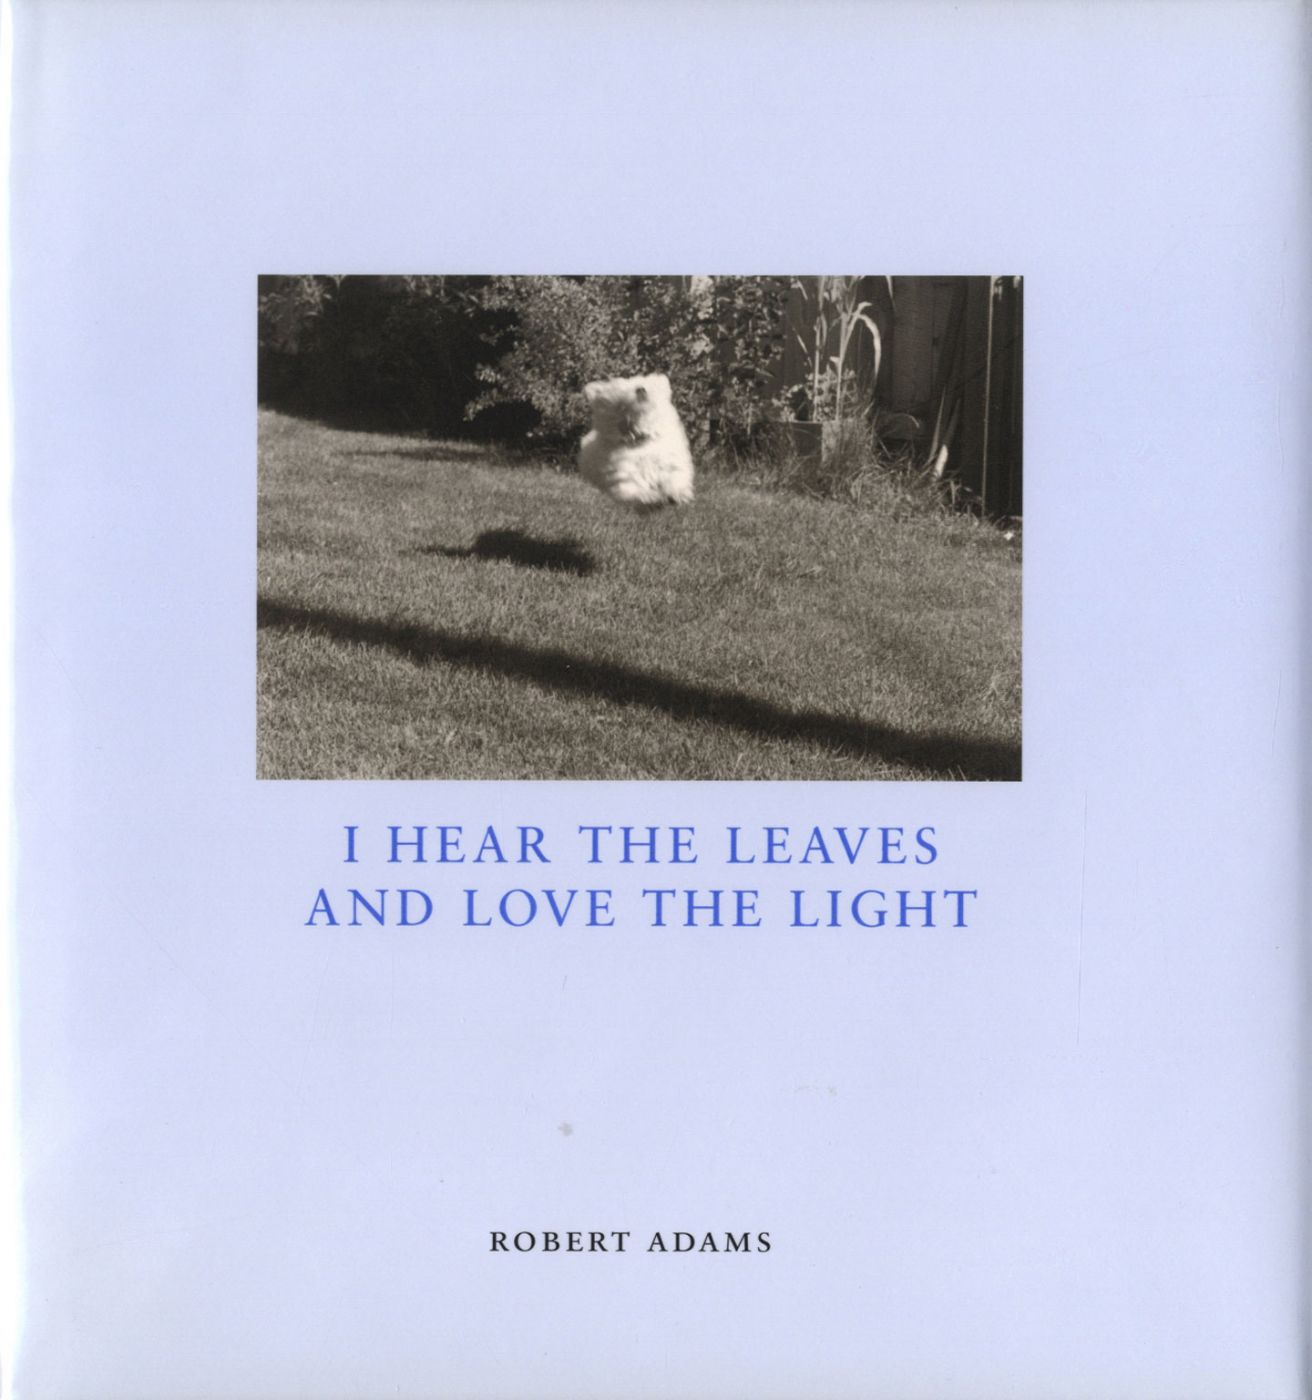 Robert Adams: I Hear the Leaves and Love the Light [SIGNED]